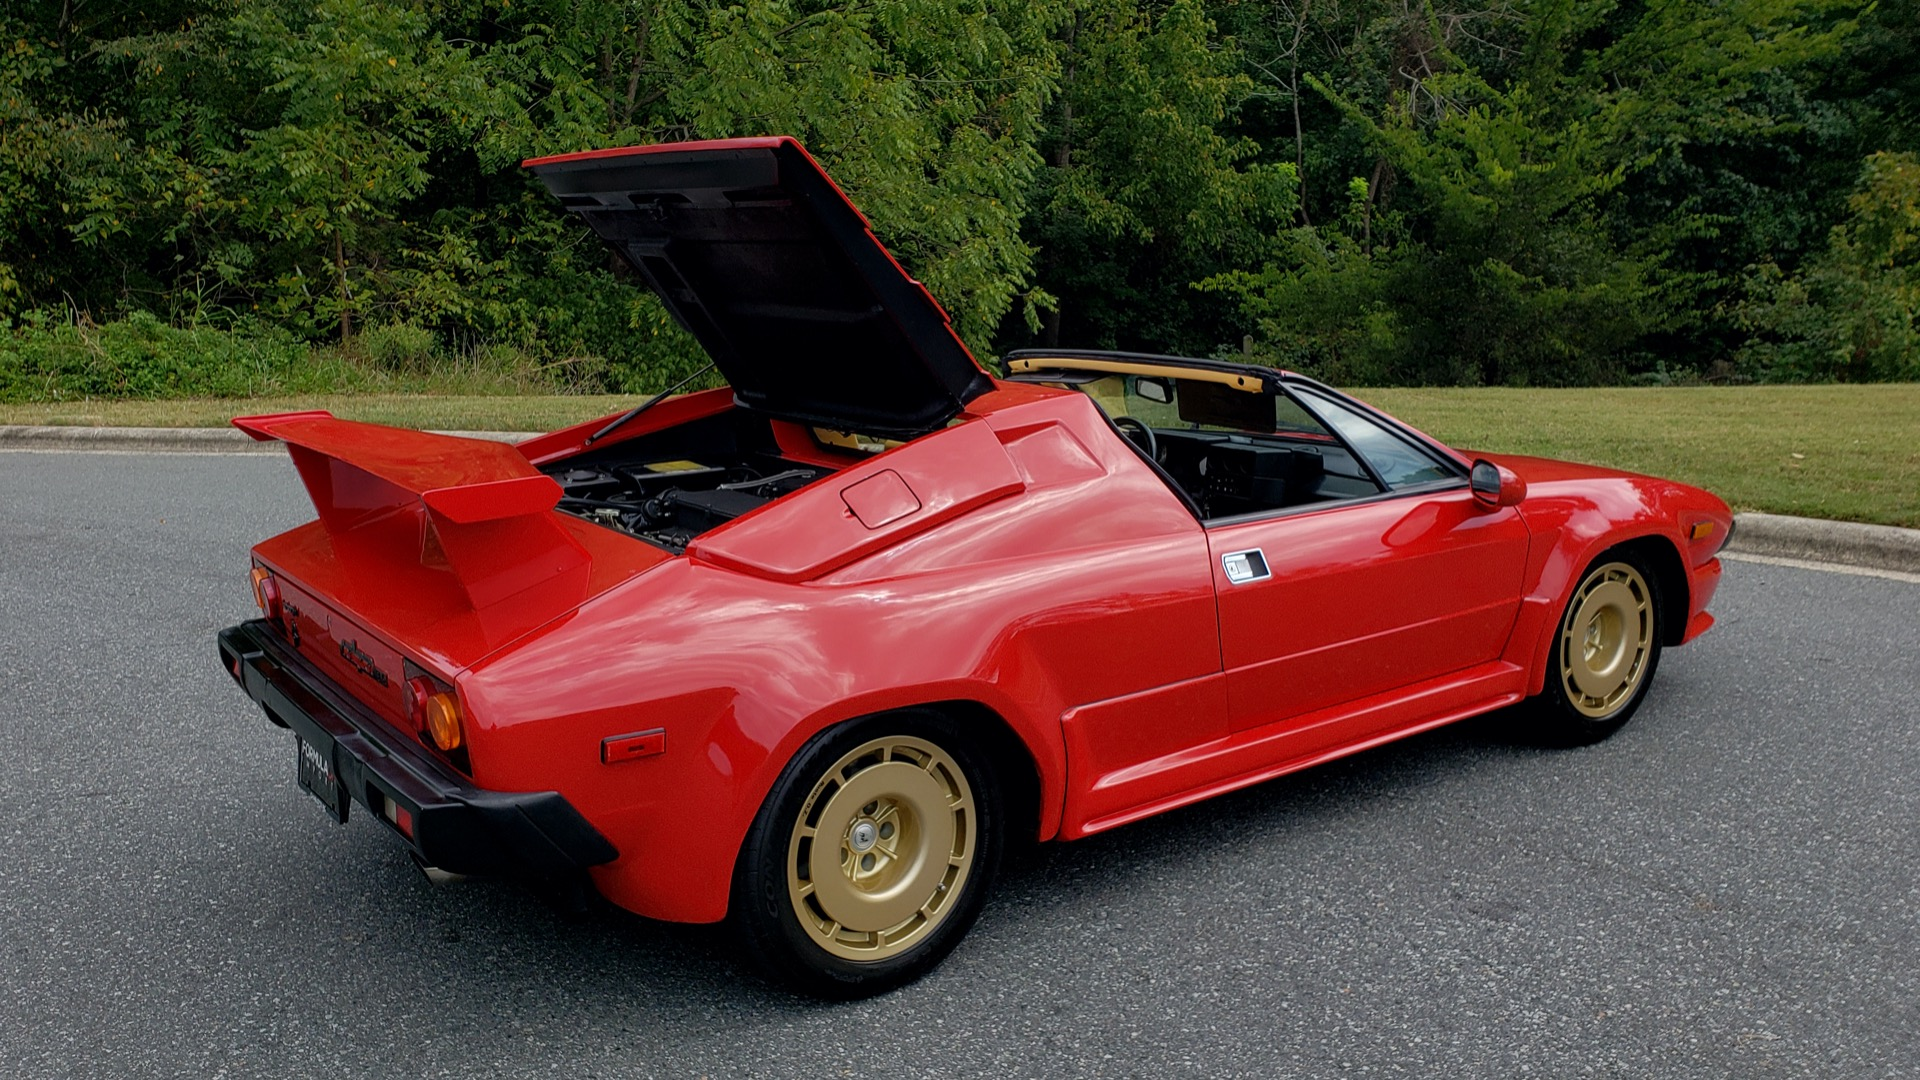 Used 1988 Lamborghini JALPA 3.5 / 5-SPD MANUAL / LOW MILES / EXCELLENT CONDITION for sale Sold at Formula Imports in Charlotte NC 28227 44